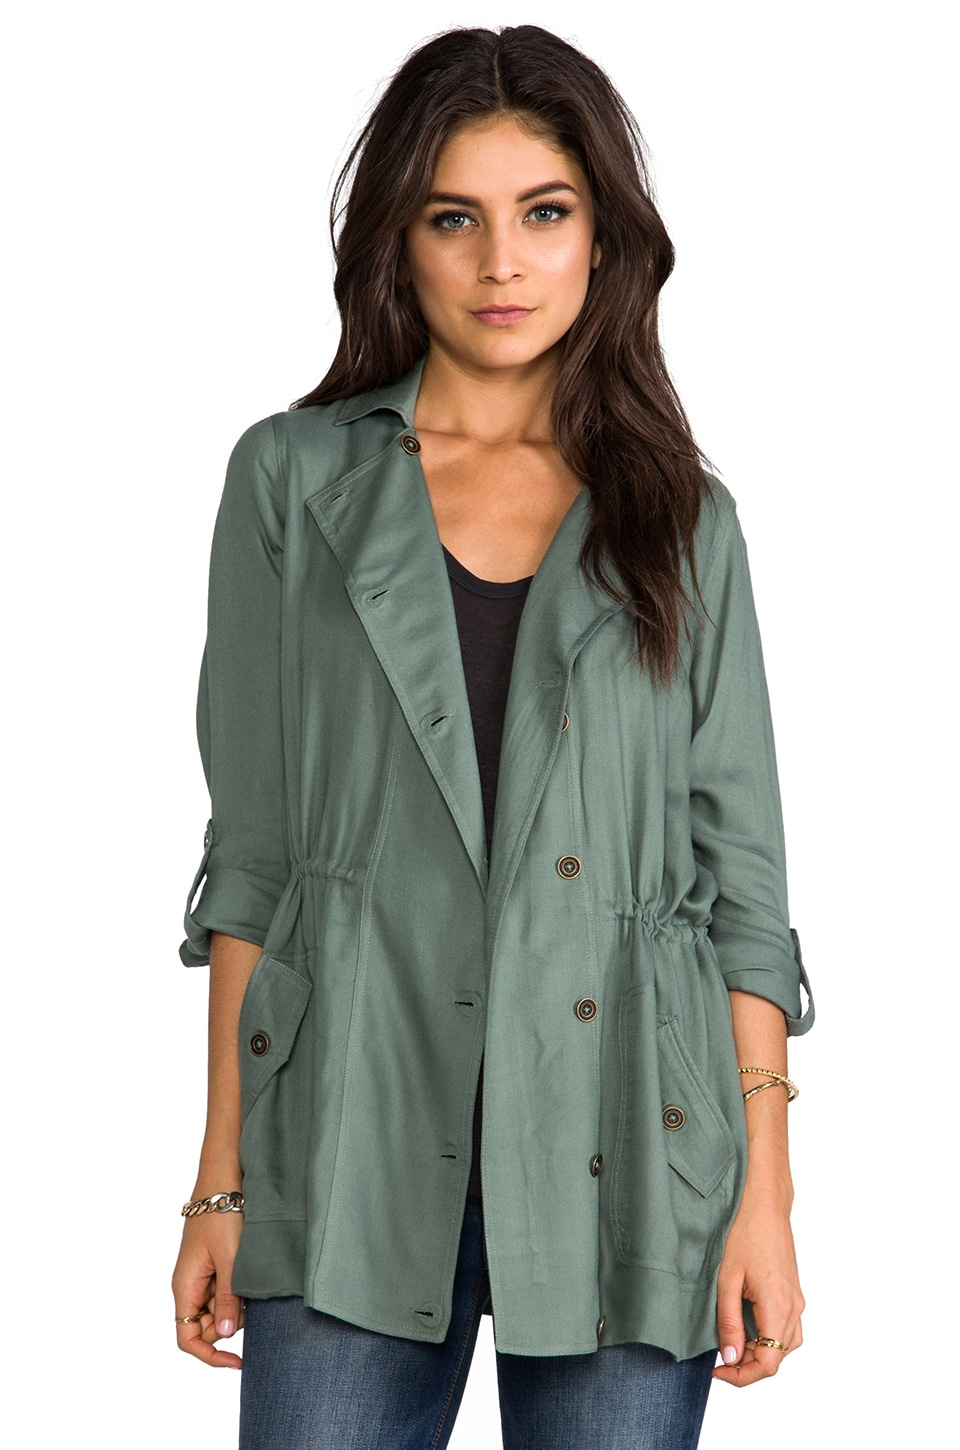 Soft Joie Cantara Jacket in Agave Green